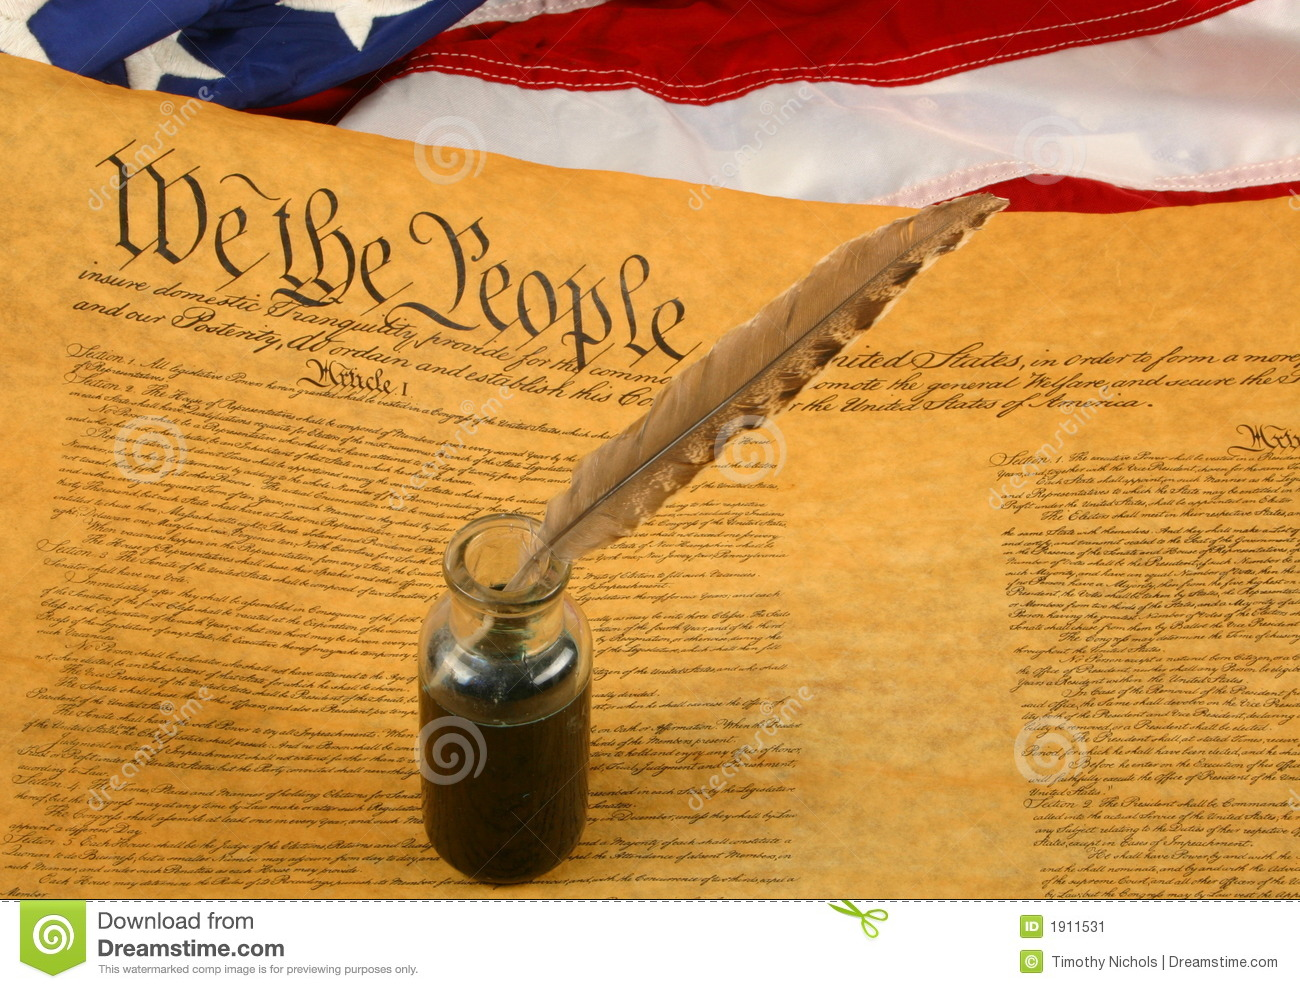 United States Constitution, Quill Pen in Inkwell, and Flag